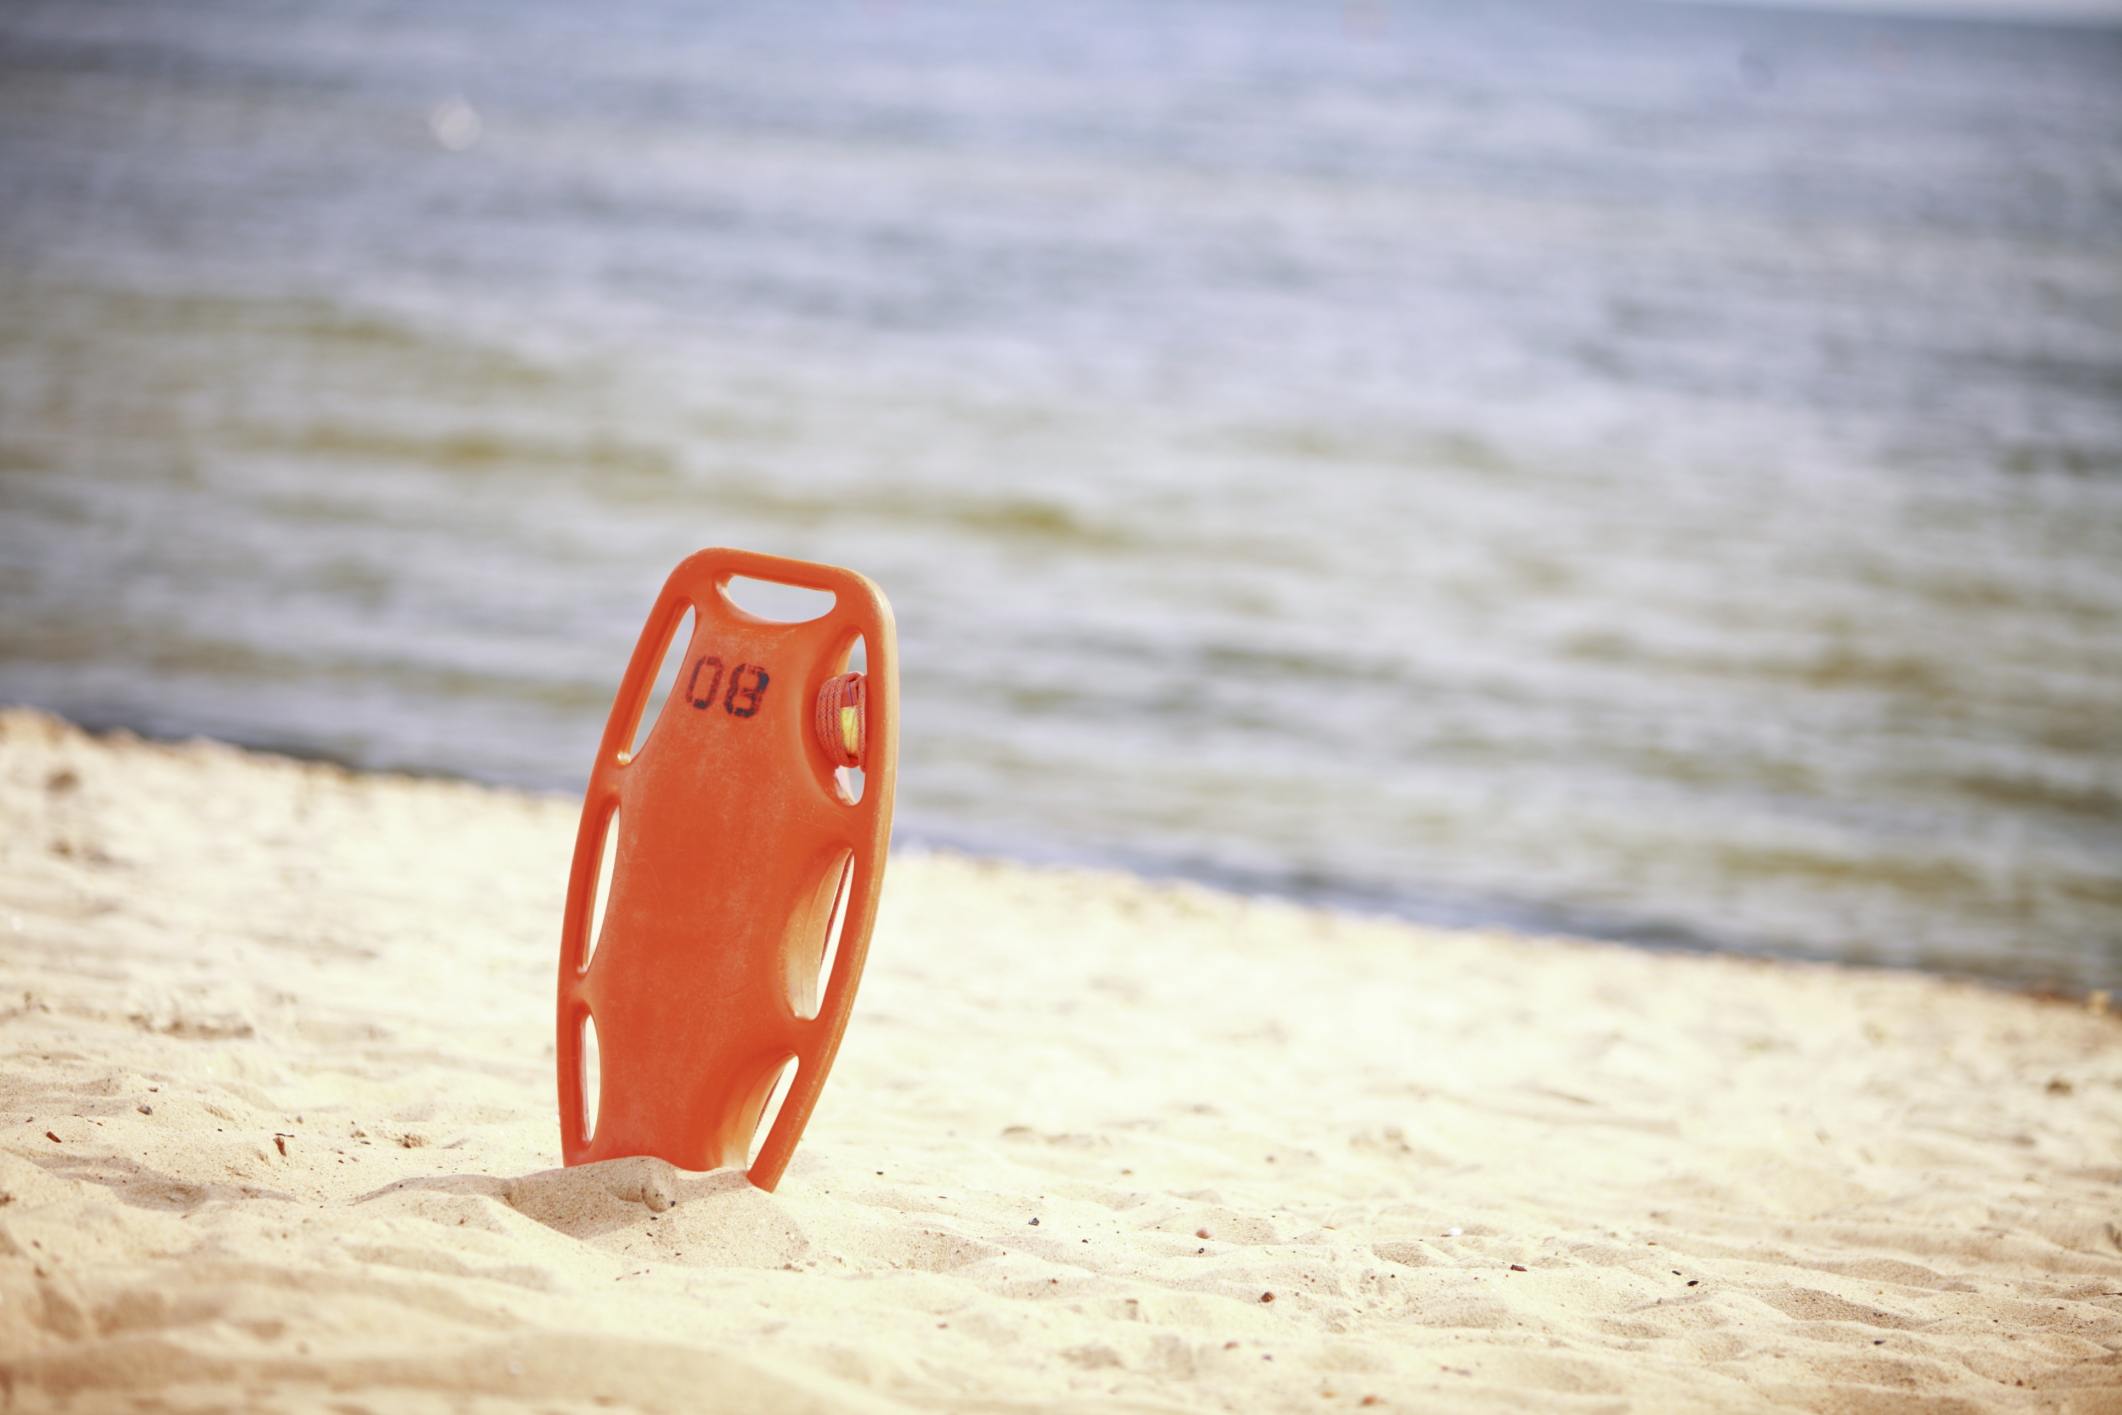 Lifeguard rescue buoy